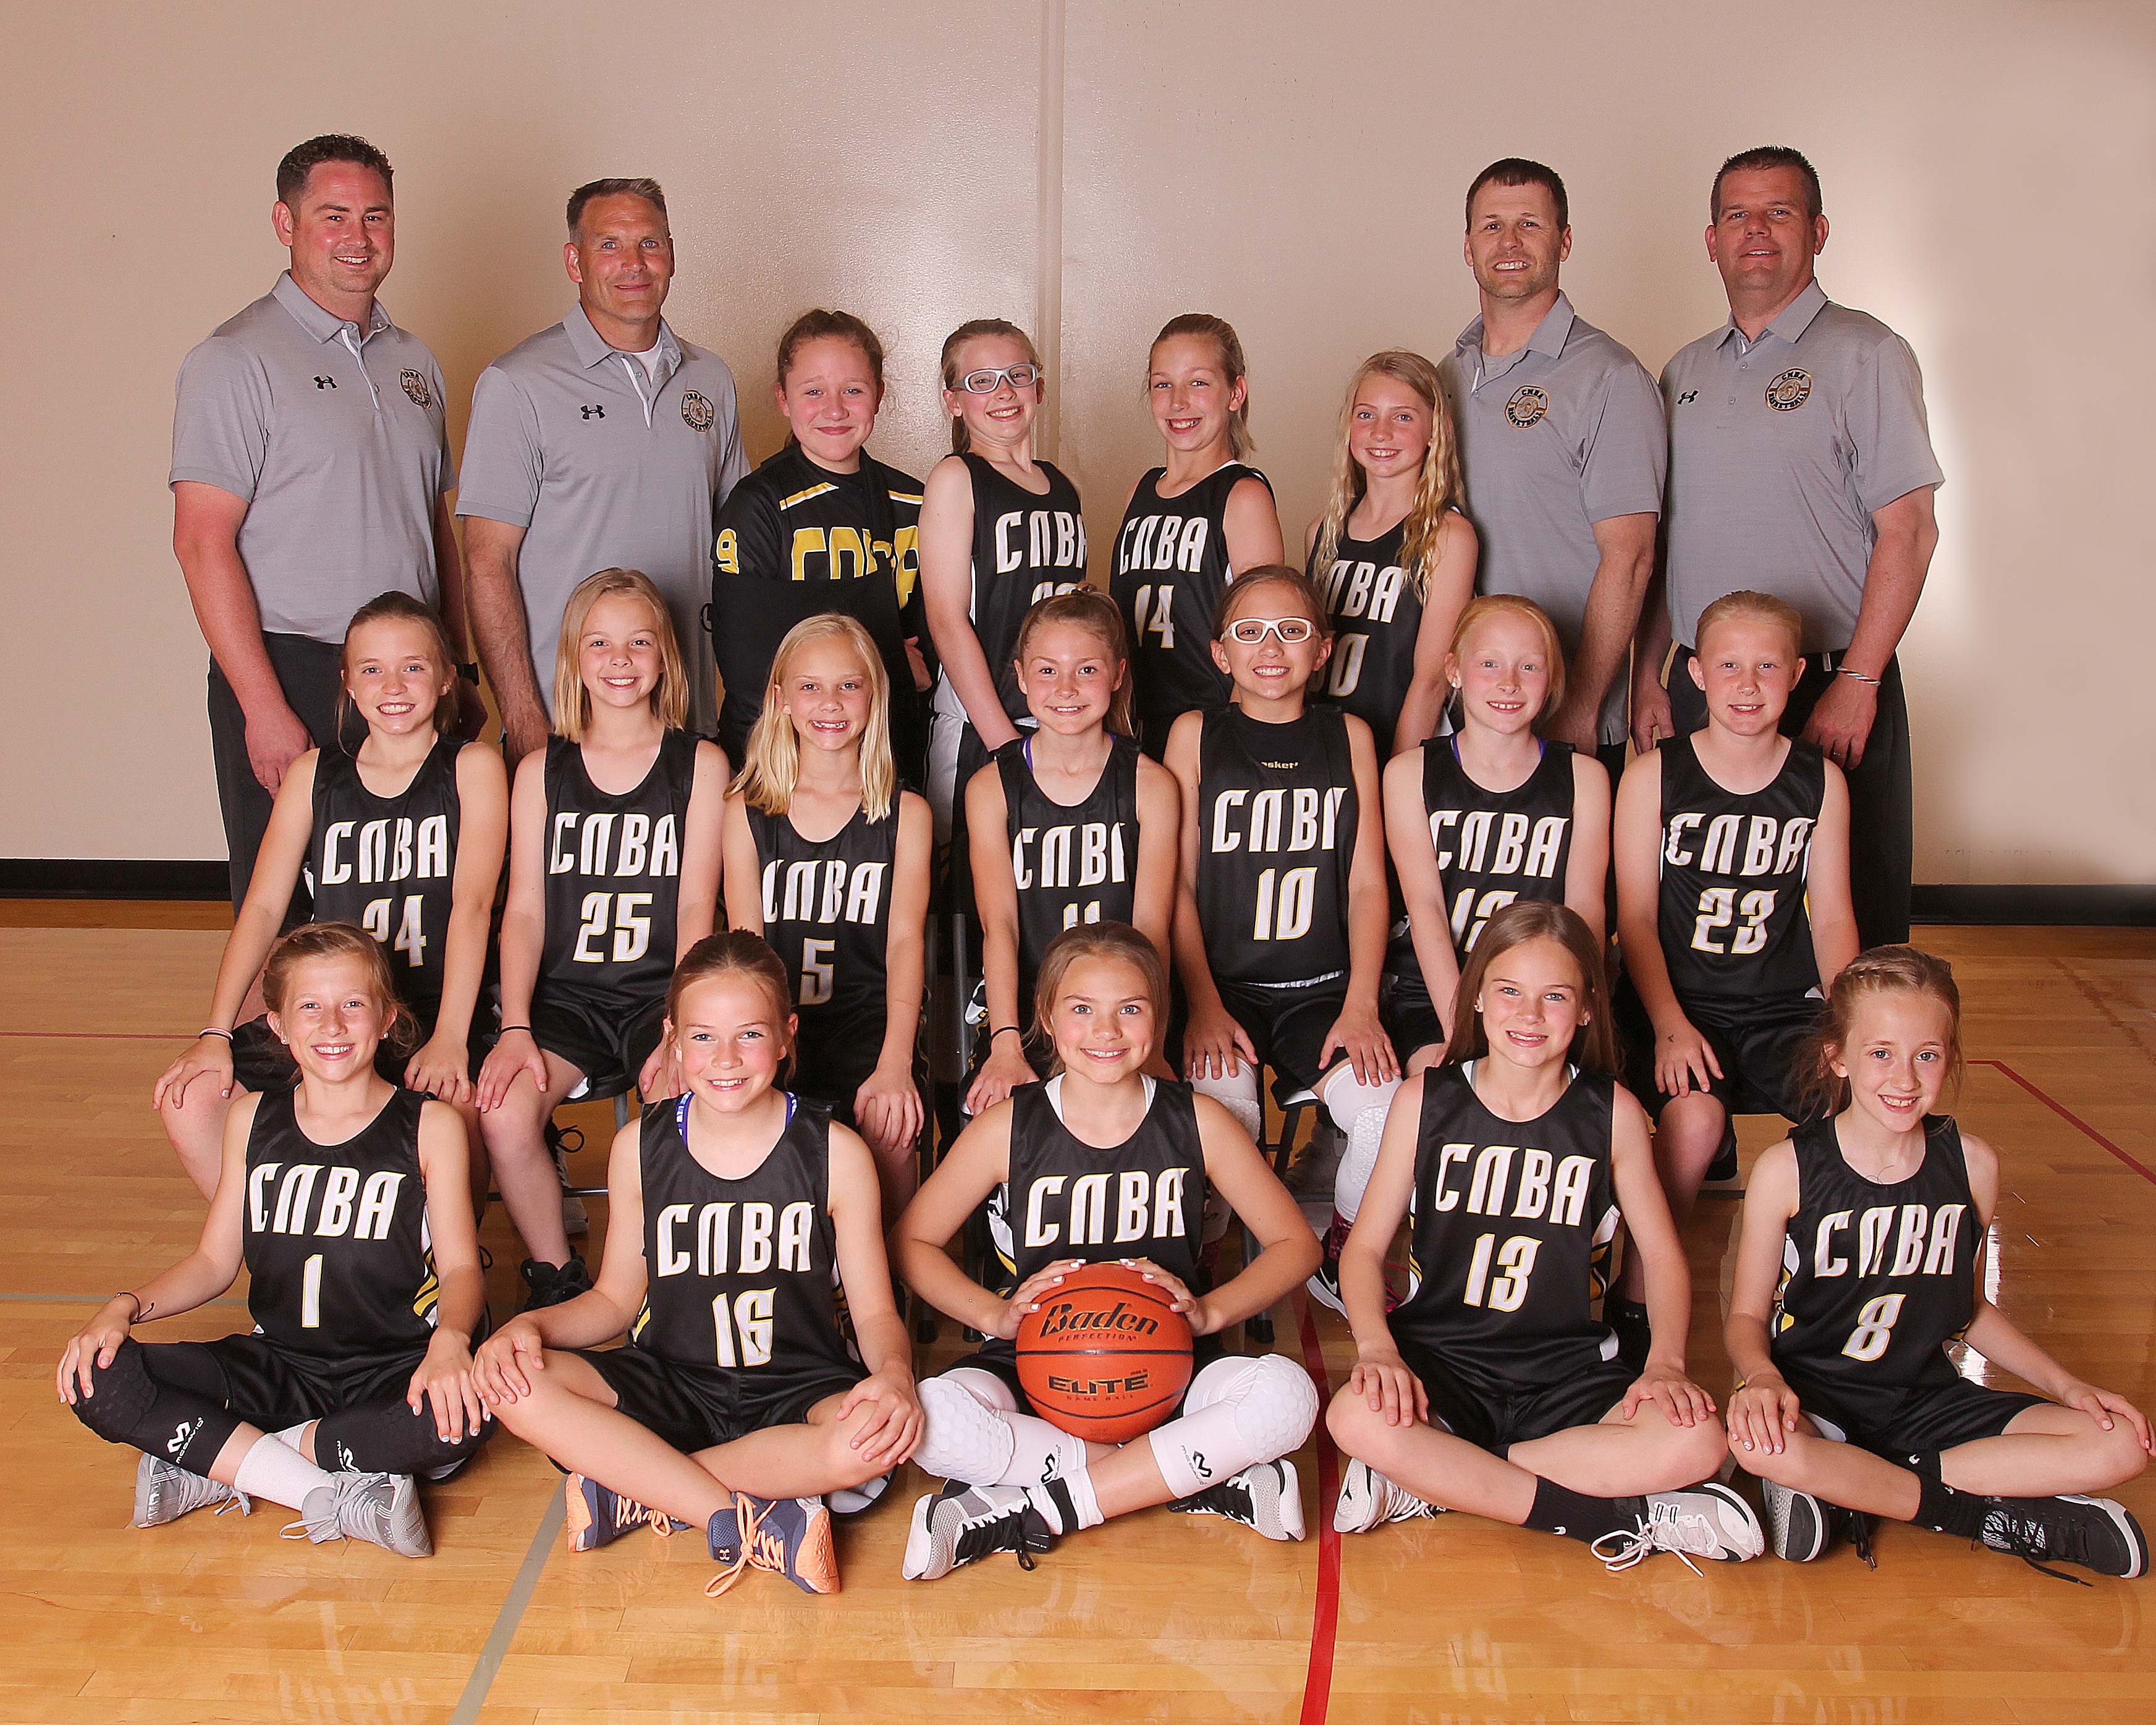 cnba71 (4th girls main)